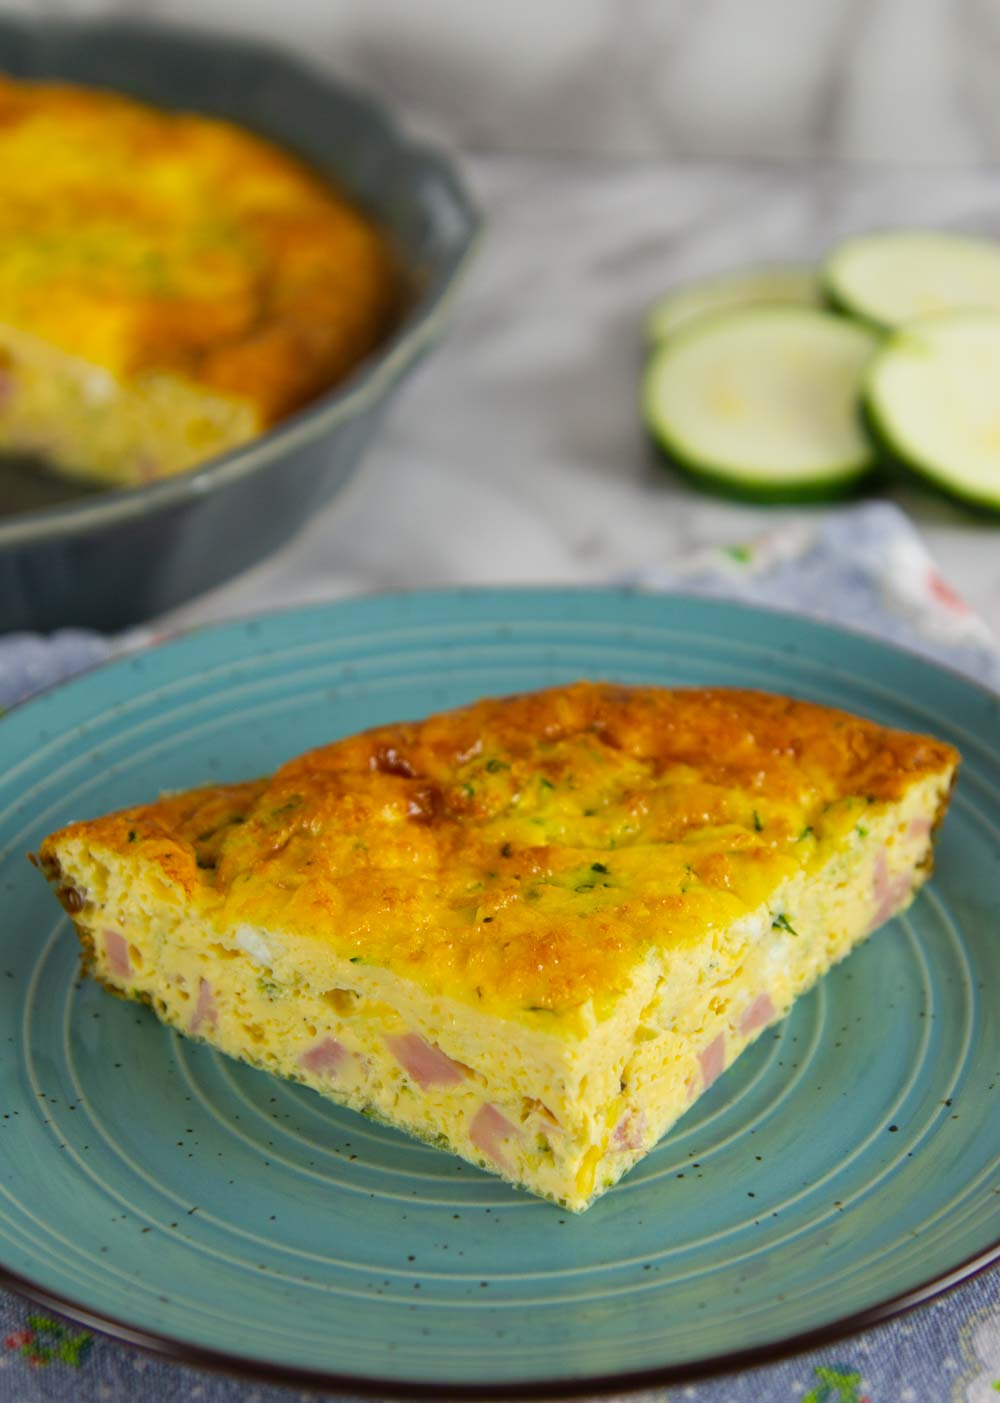 This crustless quiche is the perfect alternative to a classic quiche recipe. Perfect for brunch, breakfast, or anytime you want! #breakfast #quich2 #ketobreakfast #lowcarb #makeaheadreipes #lowcarbbreakfast